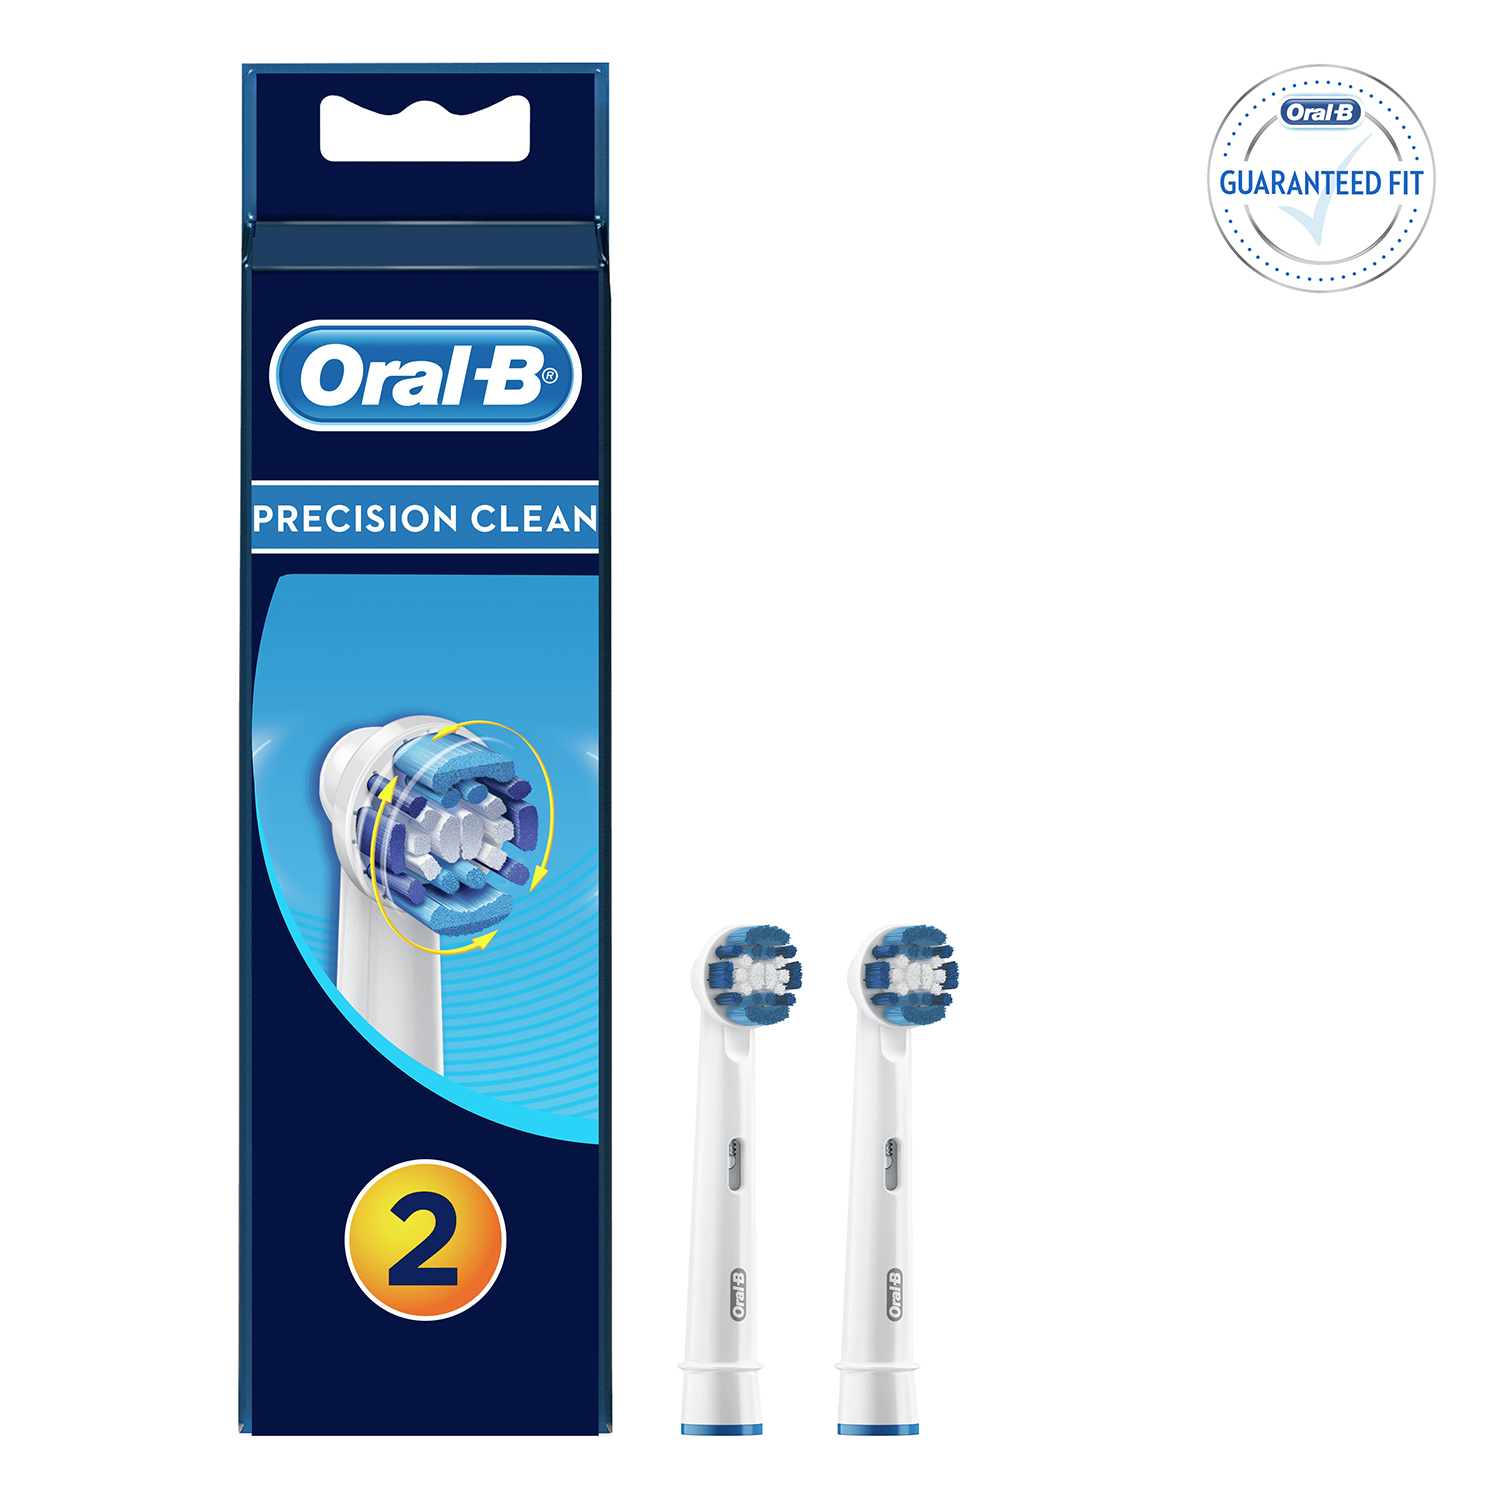 Cepillo dental eléctrico Precisión Cleam recambio Oral-B 2 ud. -